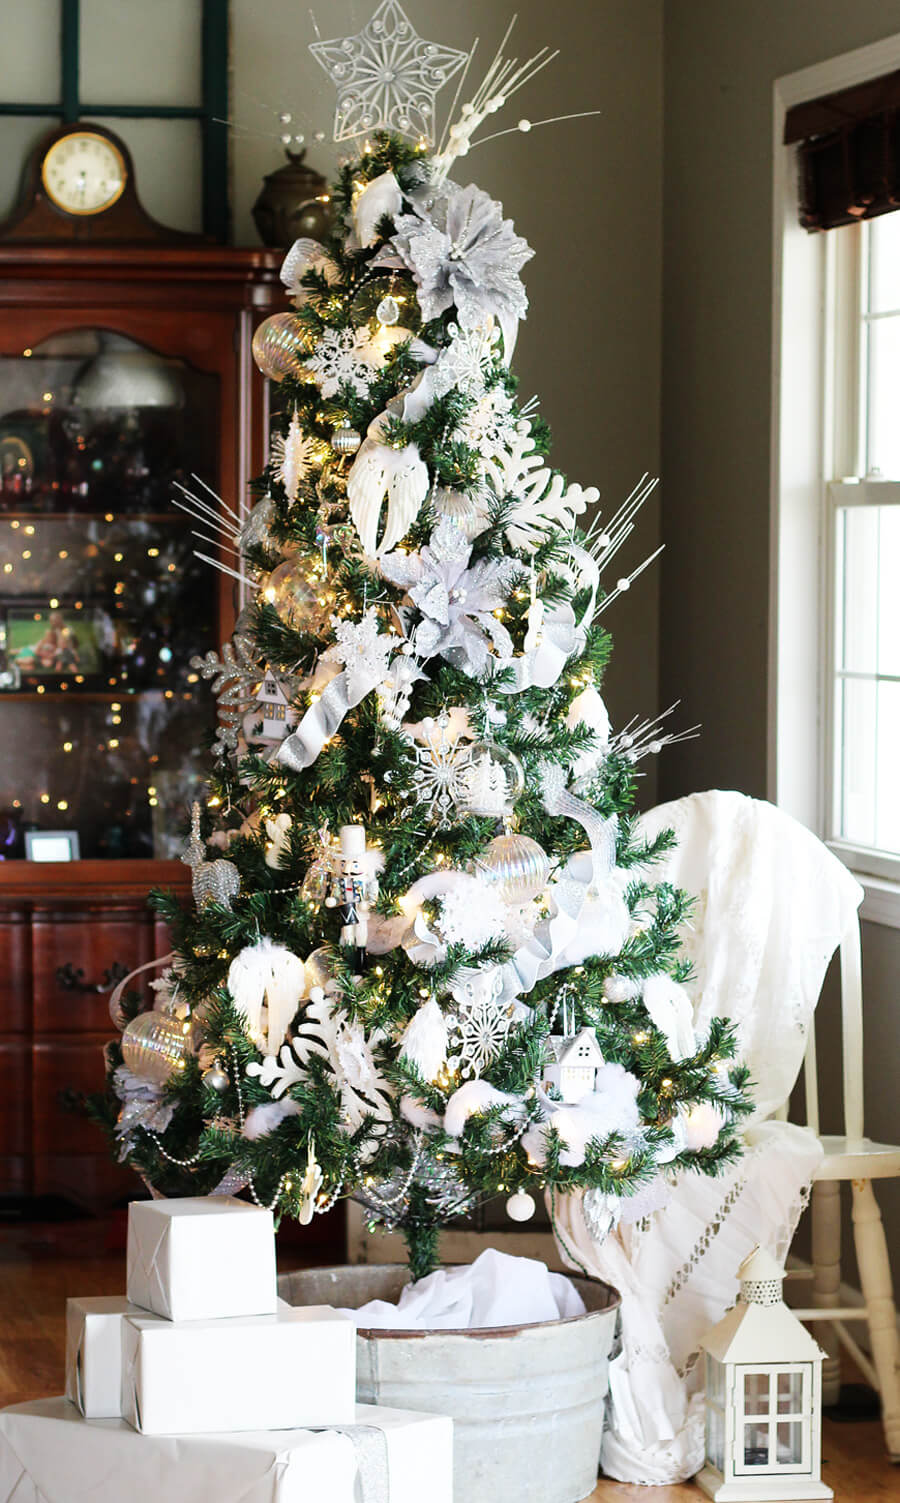 Christmas Tree Decorating Ideas.Winter White Christmas Tree Decorating Ideas Buy This Cook